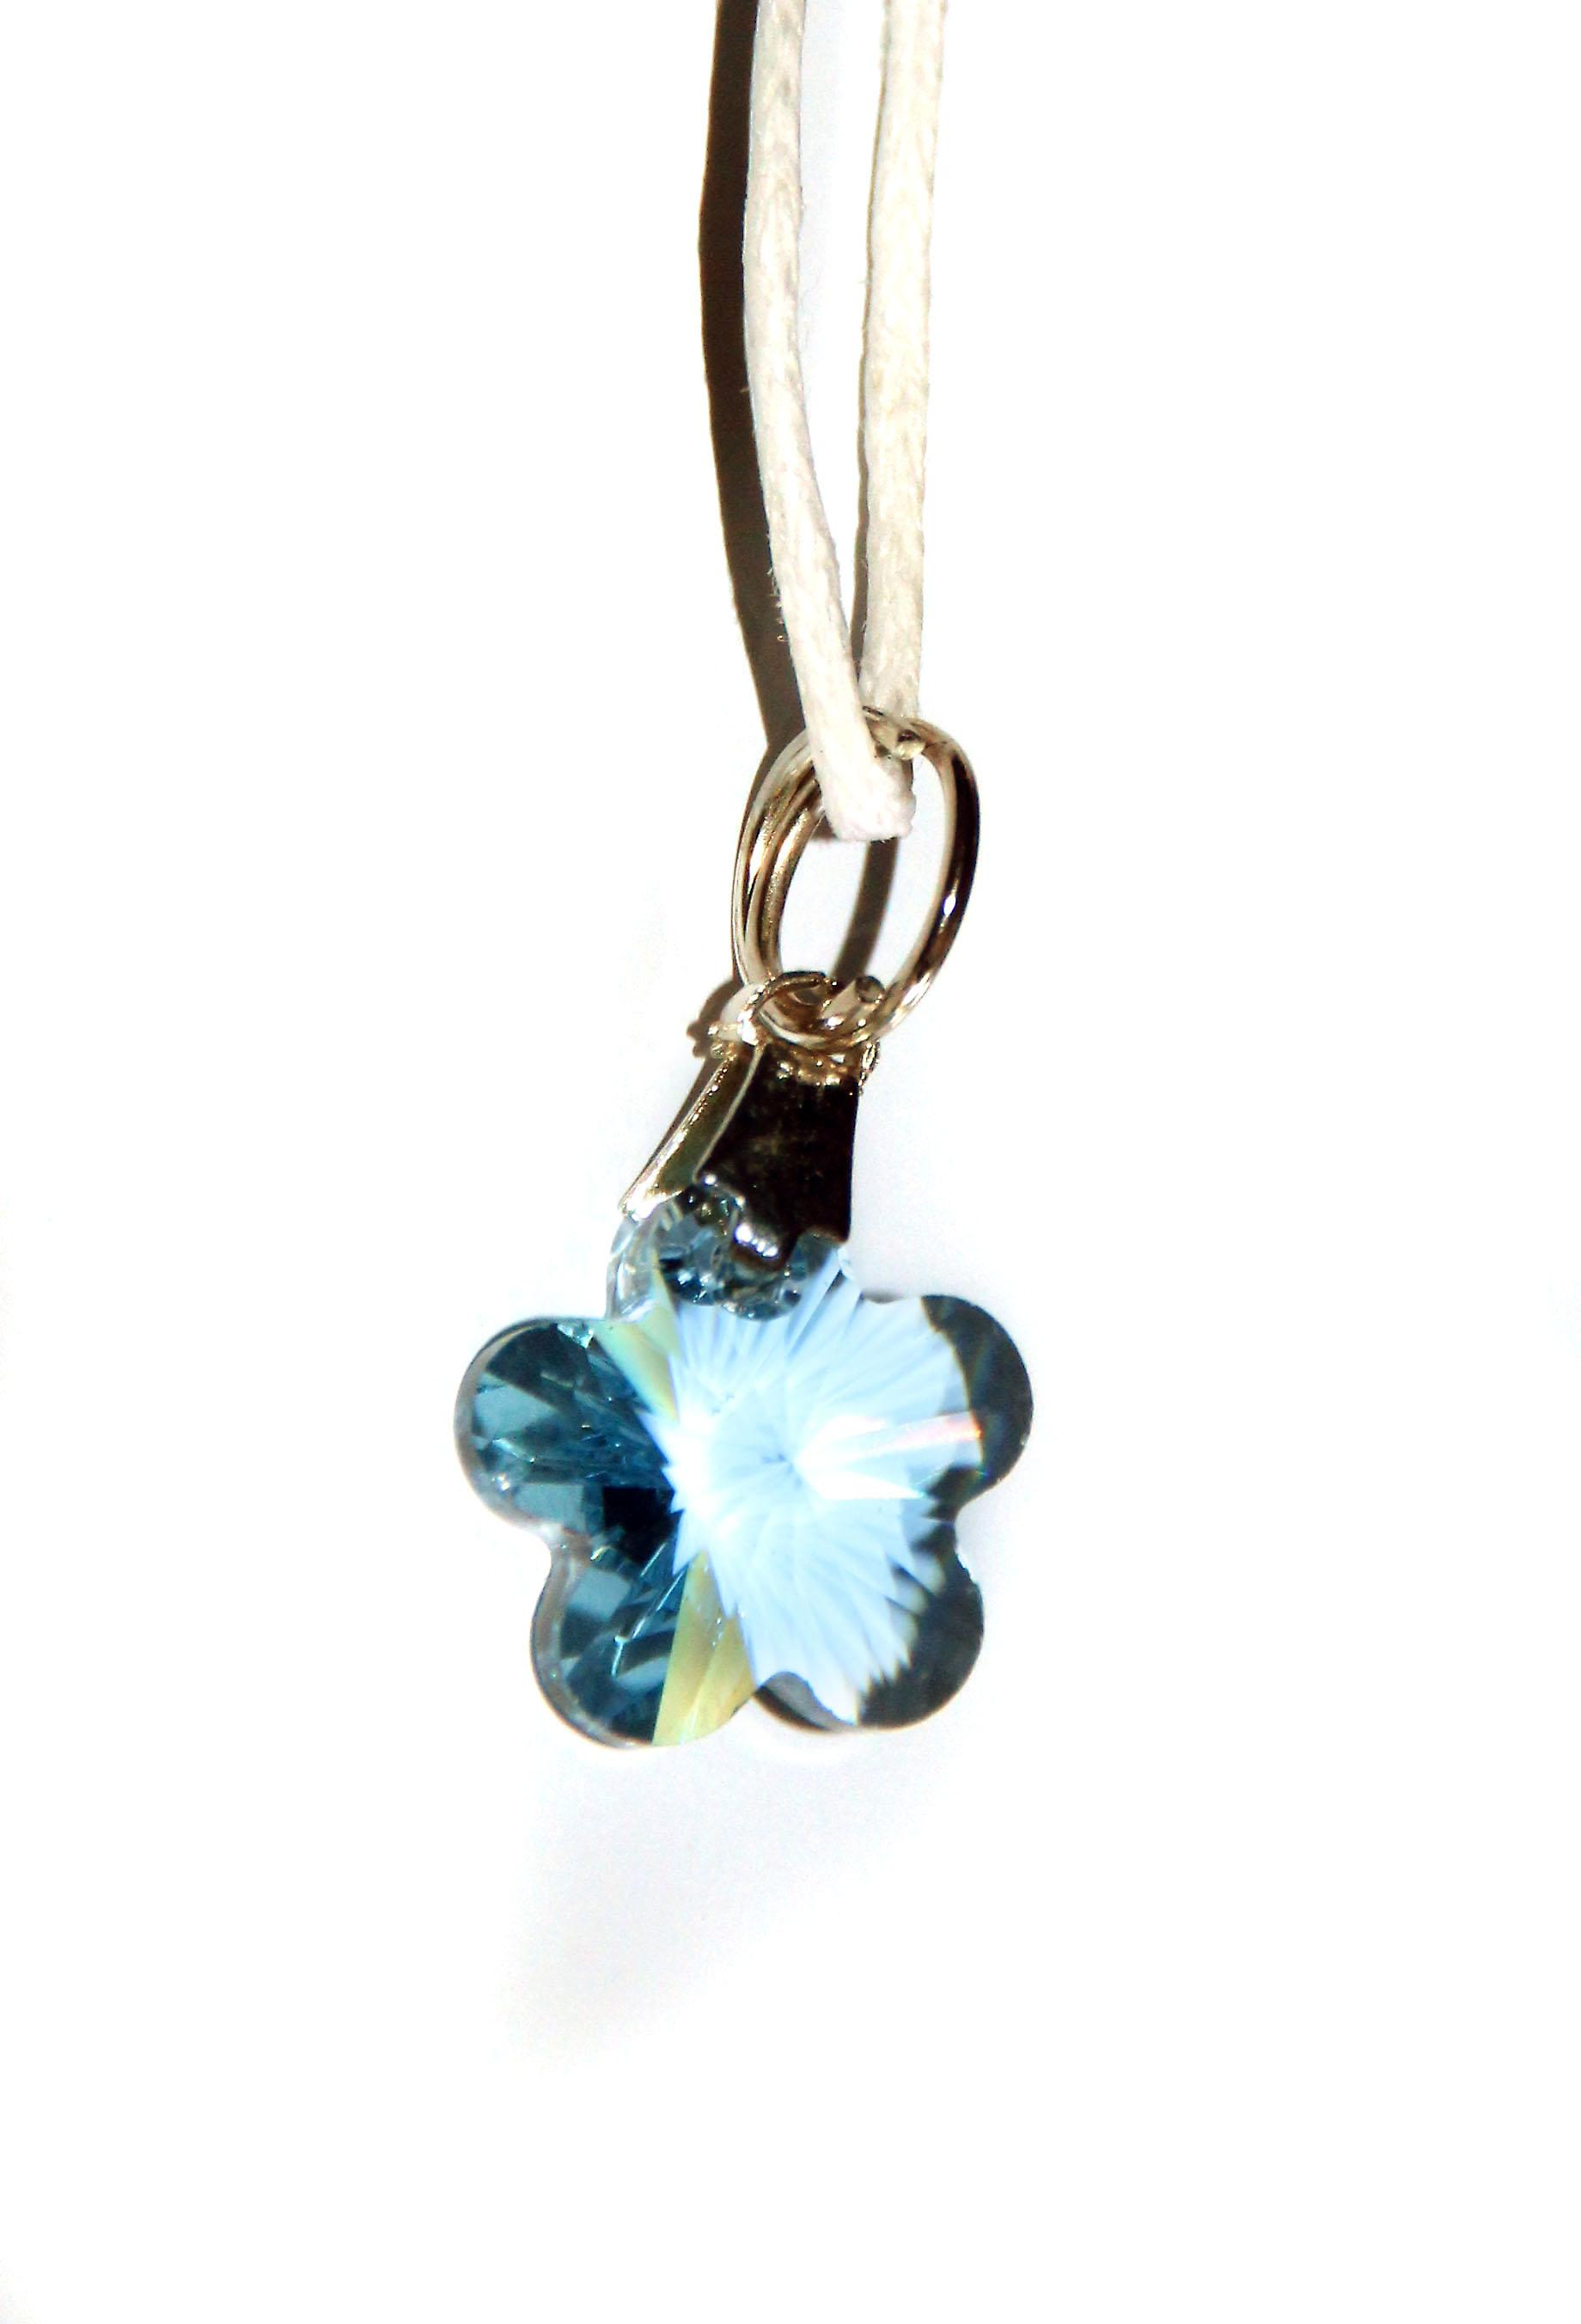 Waooh - Jewelry - Swarovski / pendant blue flower and waxed cord